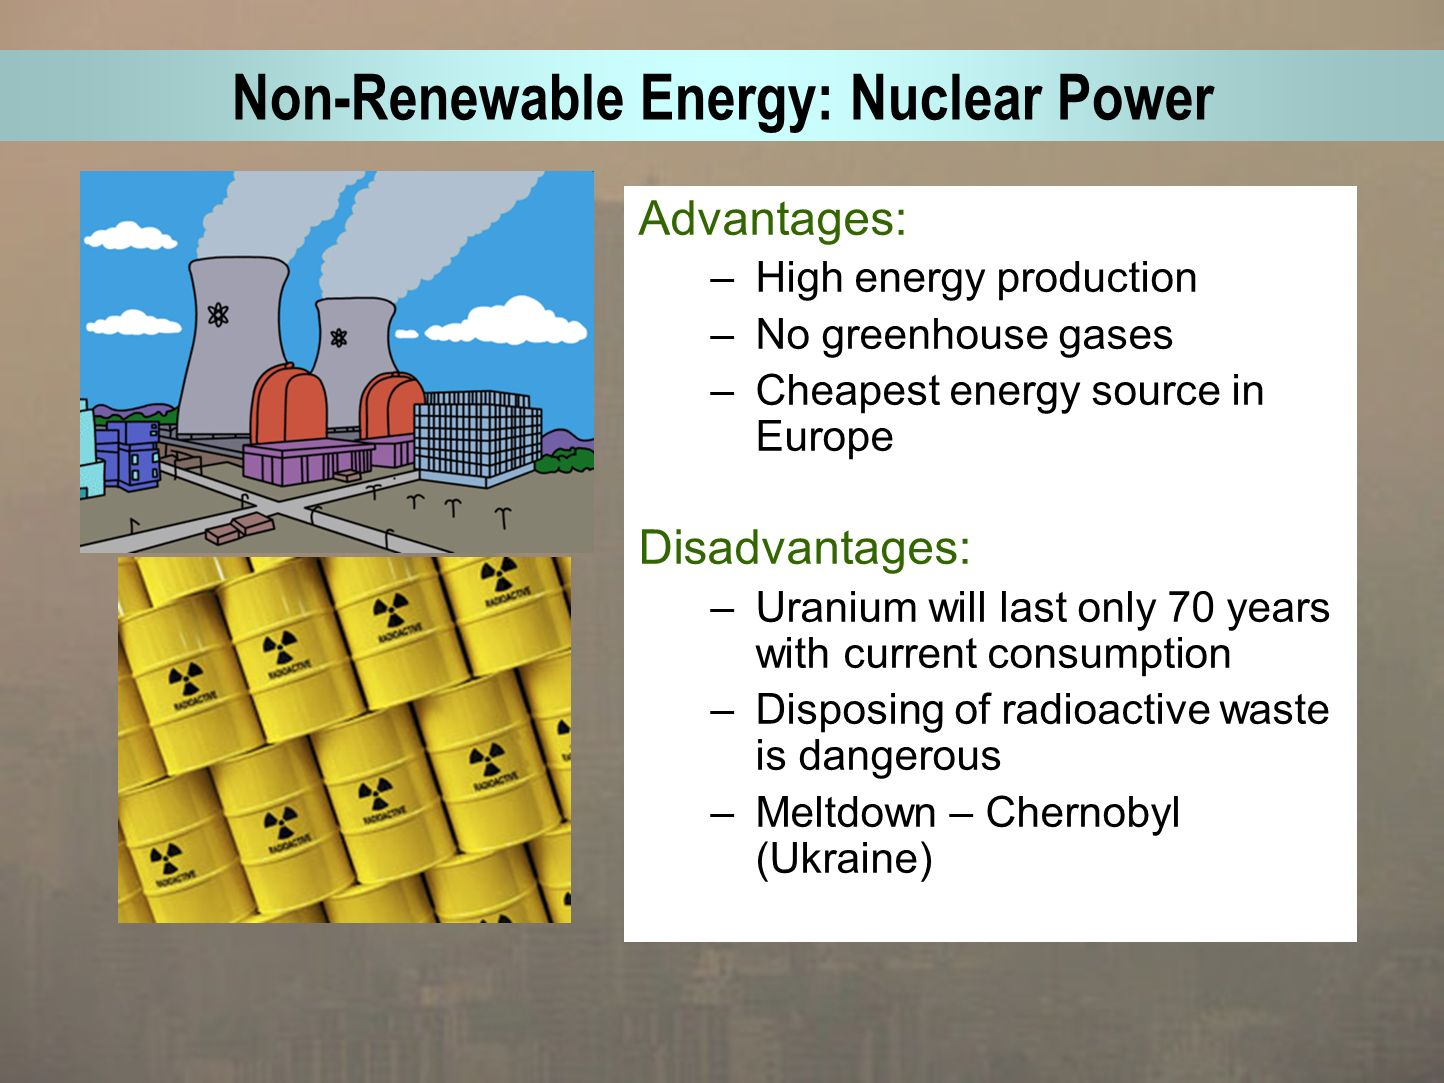 the advantages of using nuclear energy as a source of power Sources of energy: advantages and disadvantages nuclear energy 1 almost limitless source of energy 2 power plants require little land.